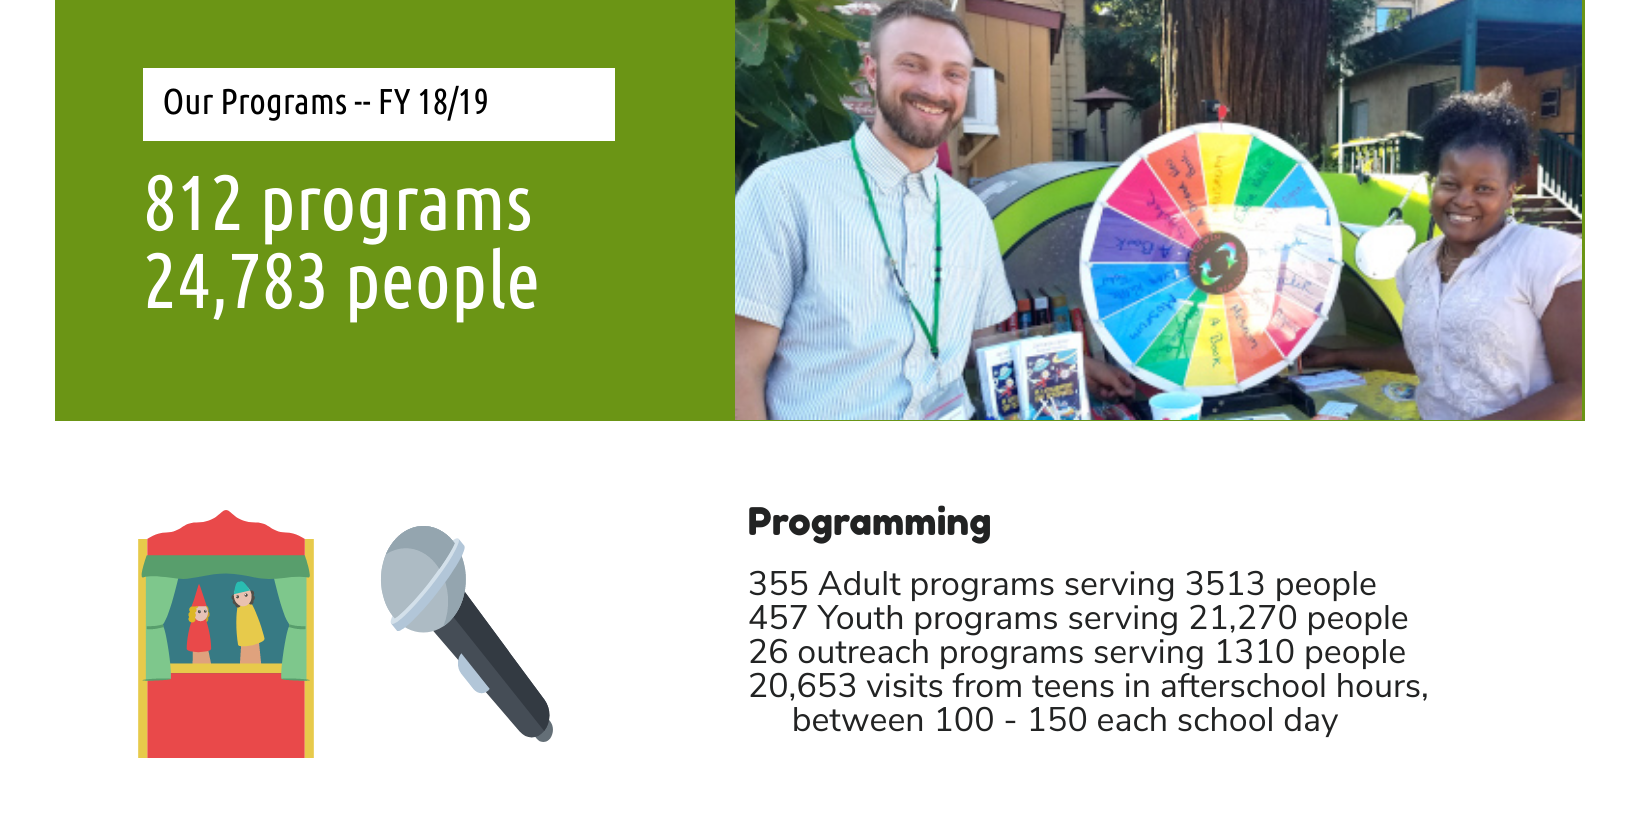 Our Programs FY 17/18, 535 programs, 24,000 people, Programming; 100 Adult programs serving 1000 peo